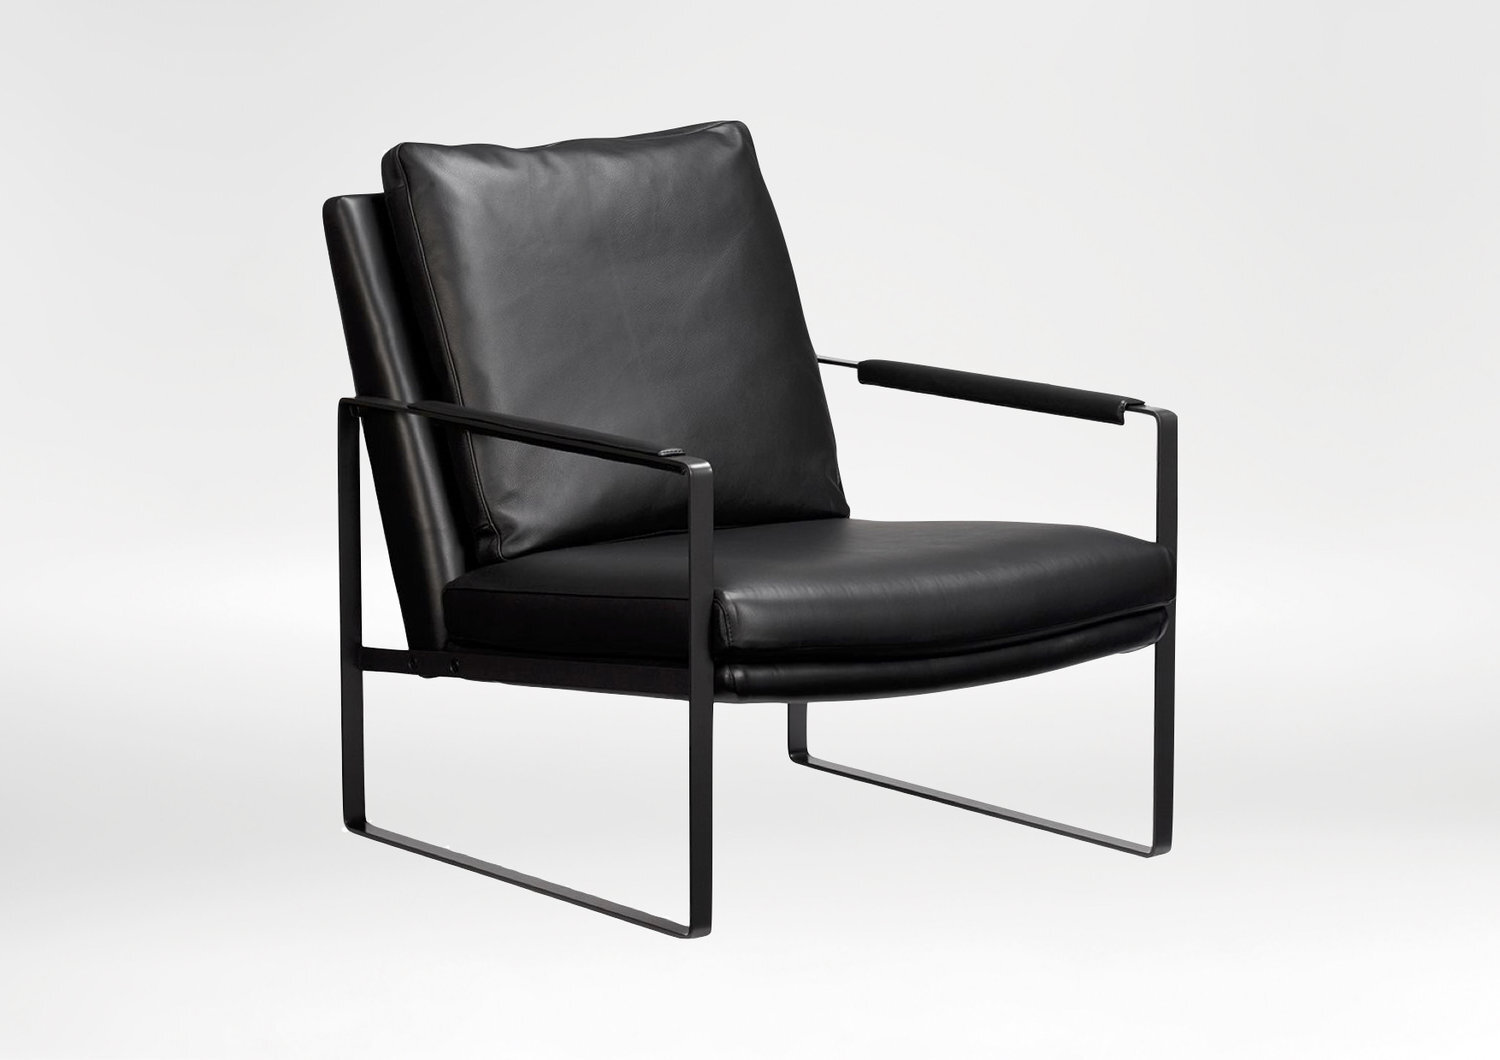 Leman chair - The Leman Lounge Chair is a showroom favourite with comfortable, deep seating and striking design.